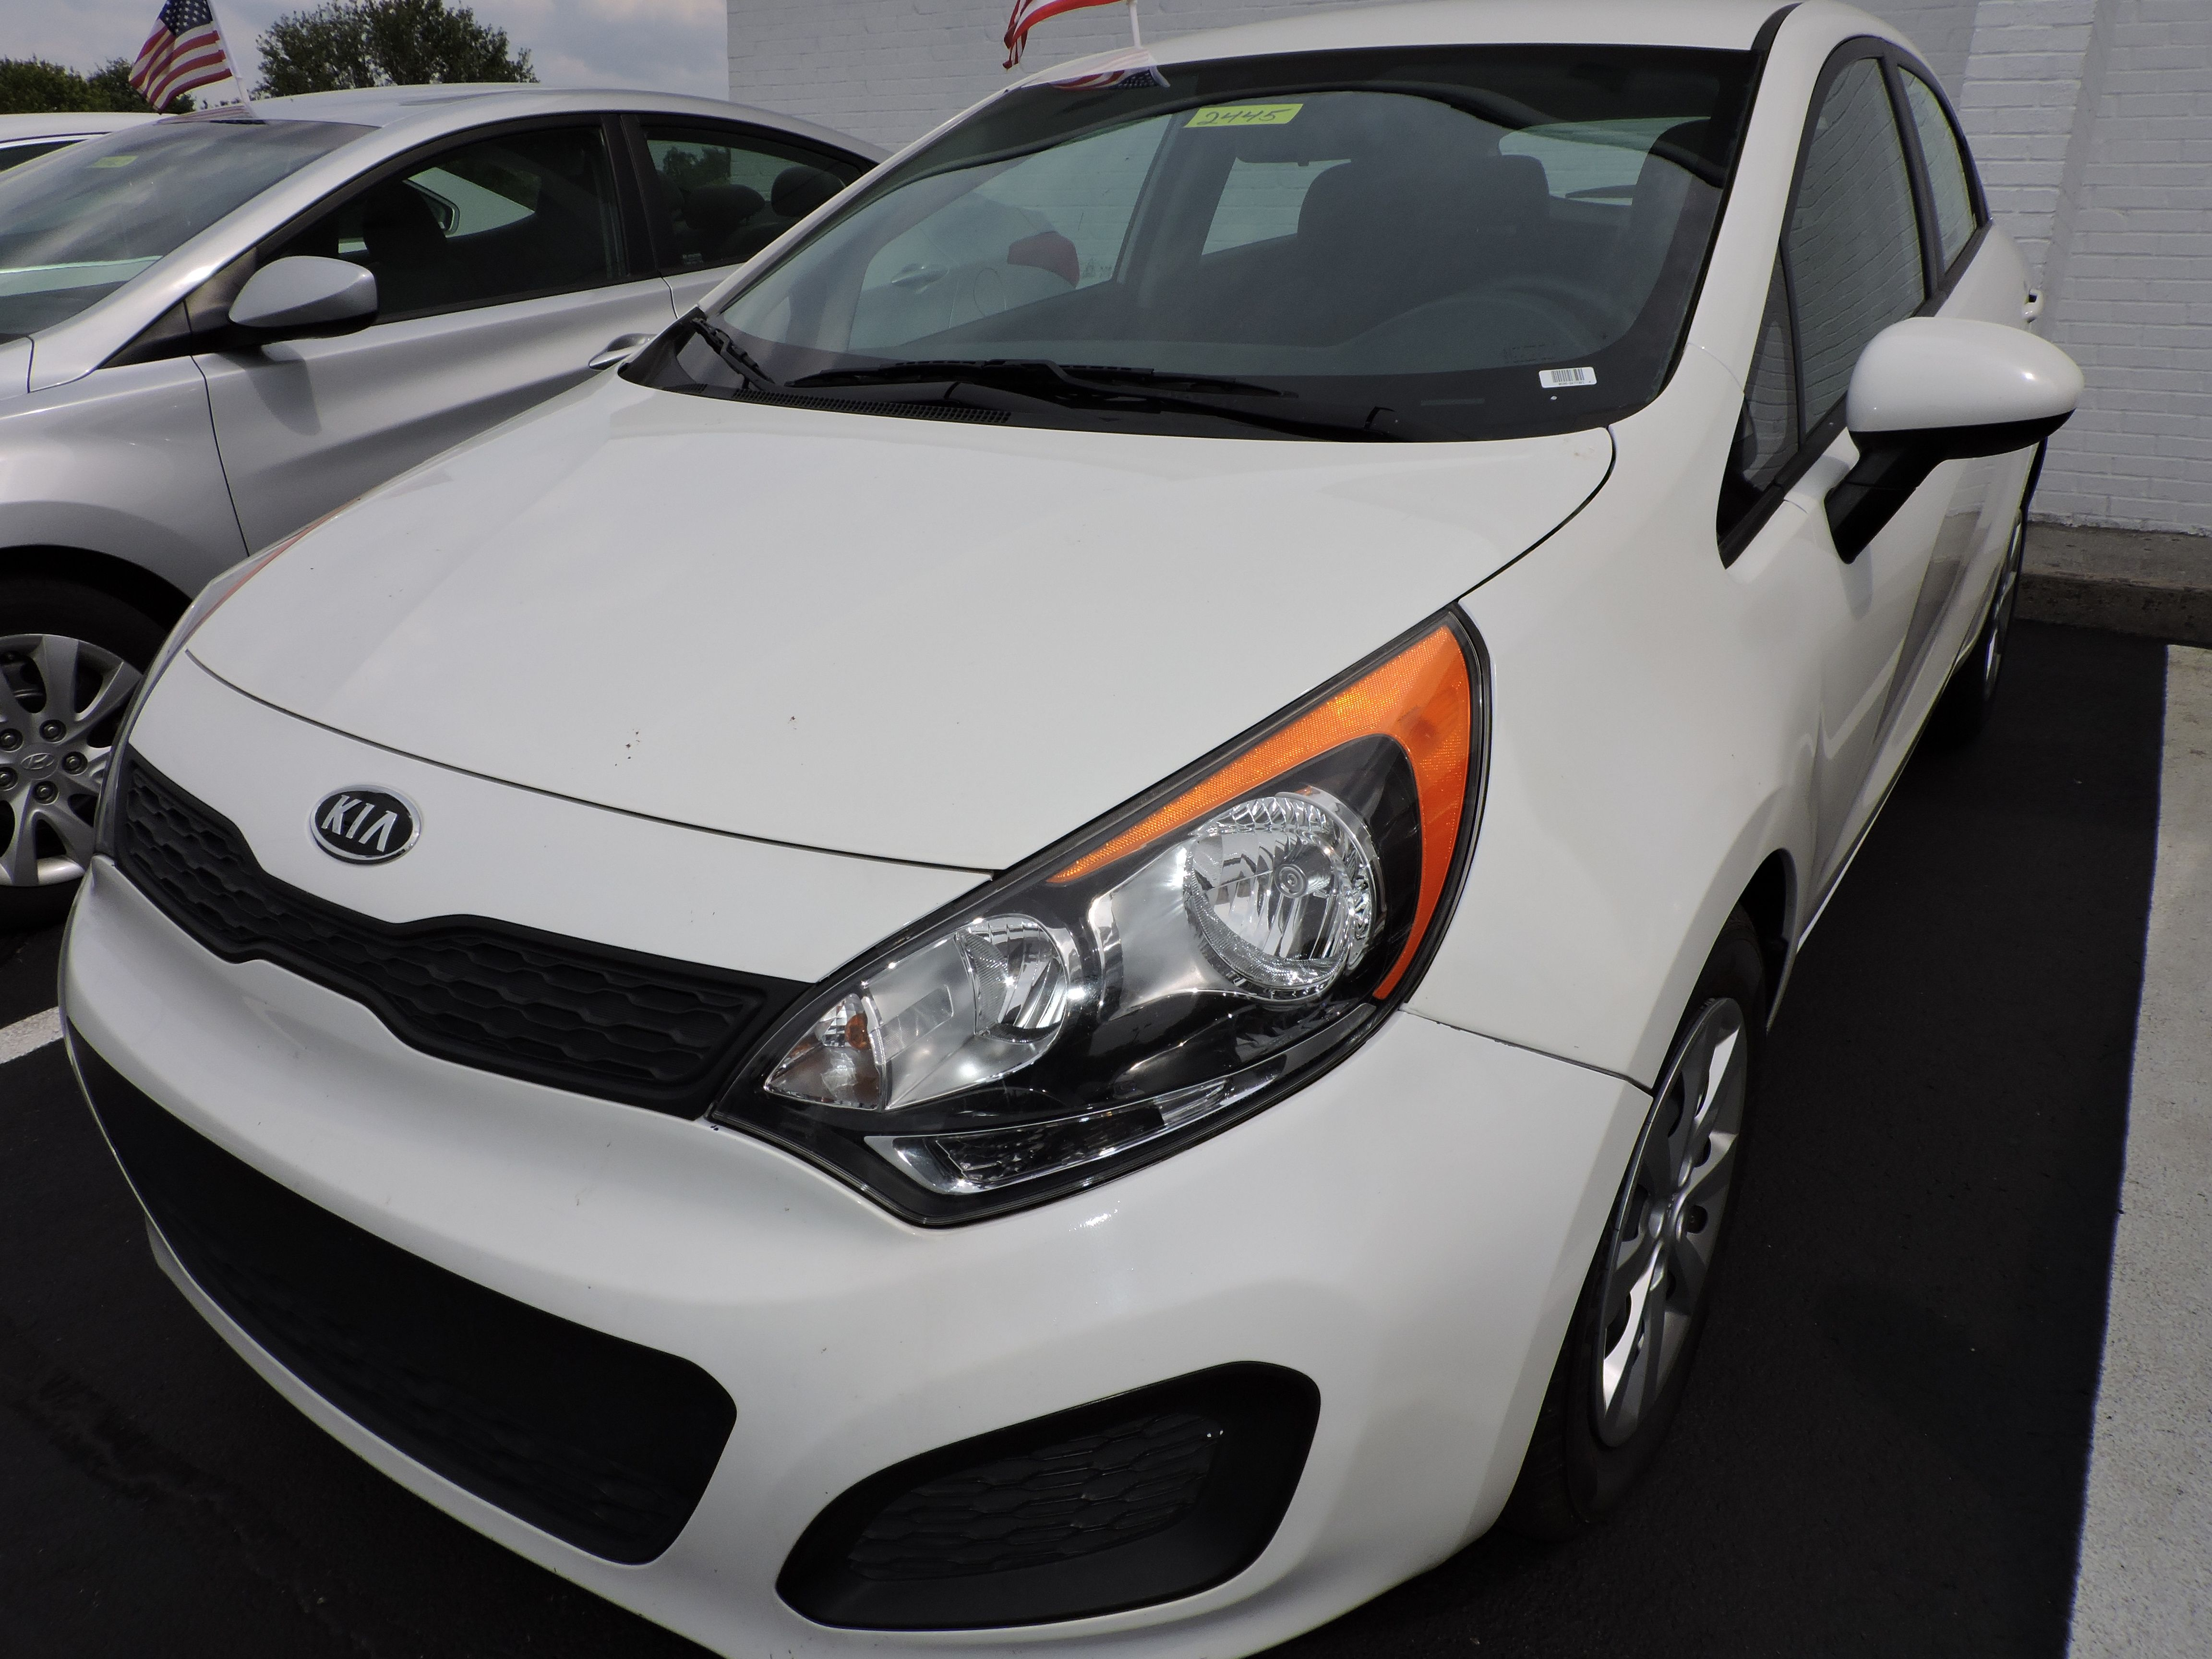 Kia Used Cars - CLICK HERE http://www.classifiedads.com/cars ...